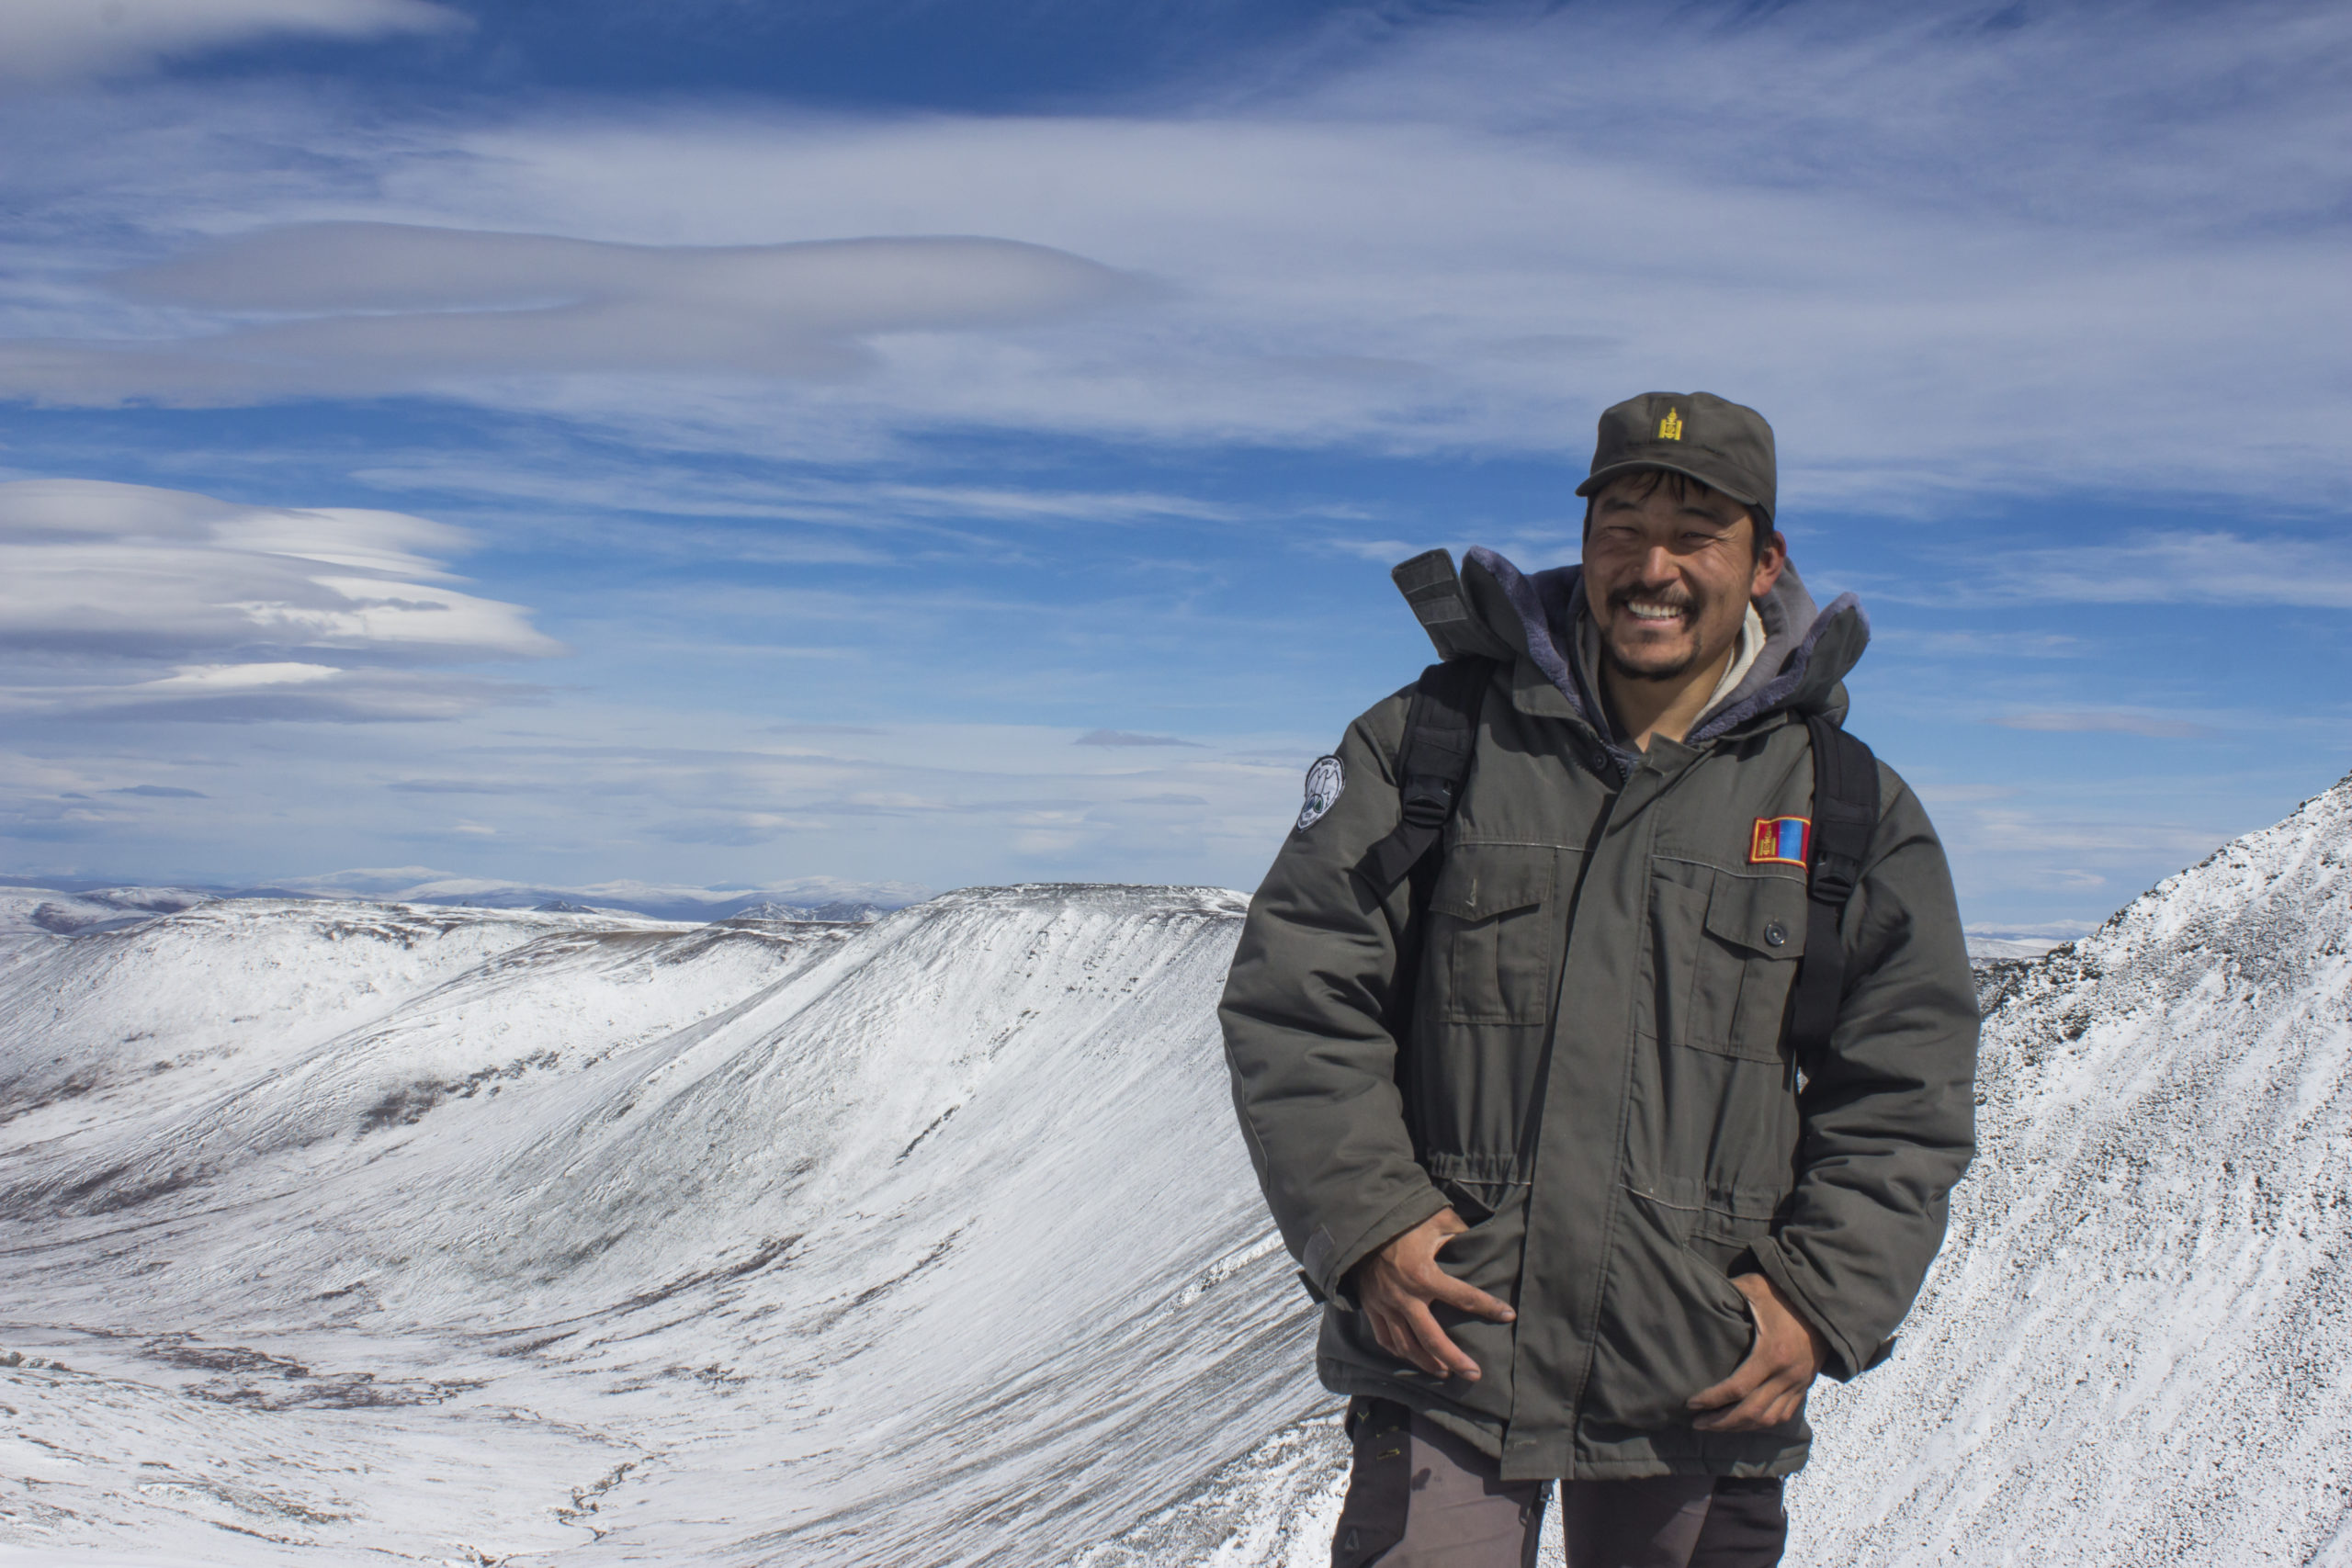 A joint effort to map the snow leopard across Mongolia